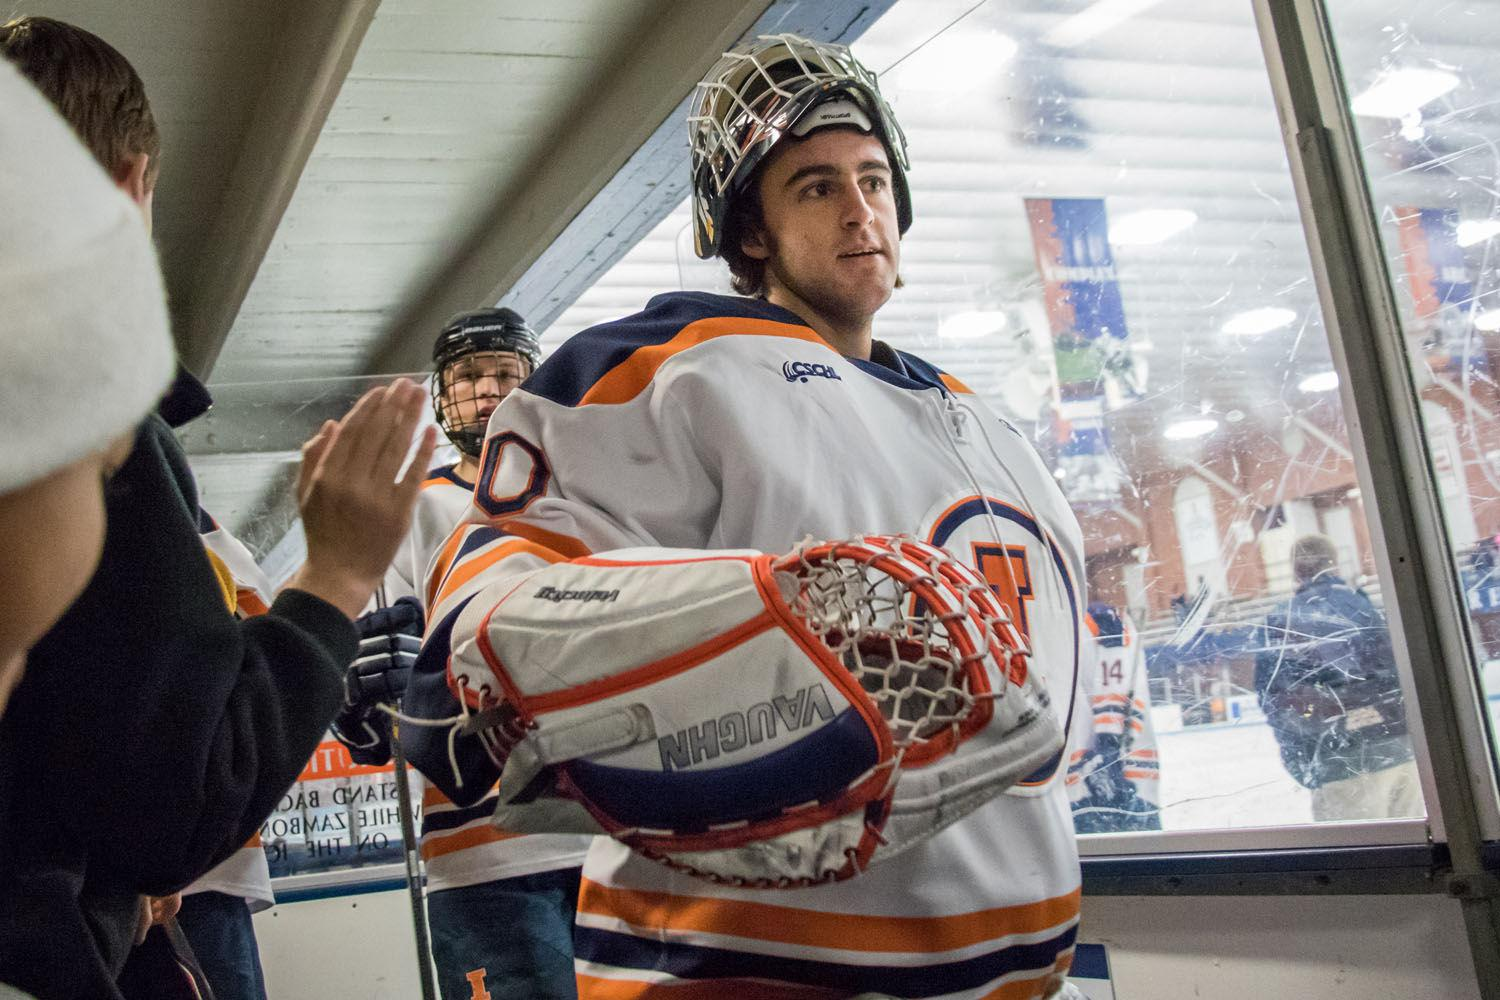 Illinois' Zachary Danna returns to the locker room after the hockey game v. Eastern Michigan at the Ice Arena on Feb. 27. Illinois won 10-1.